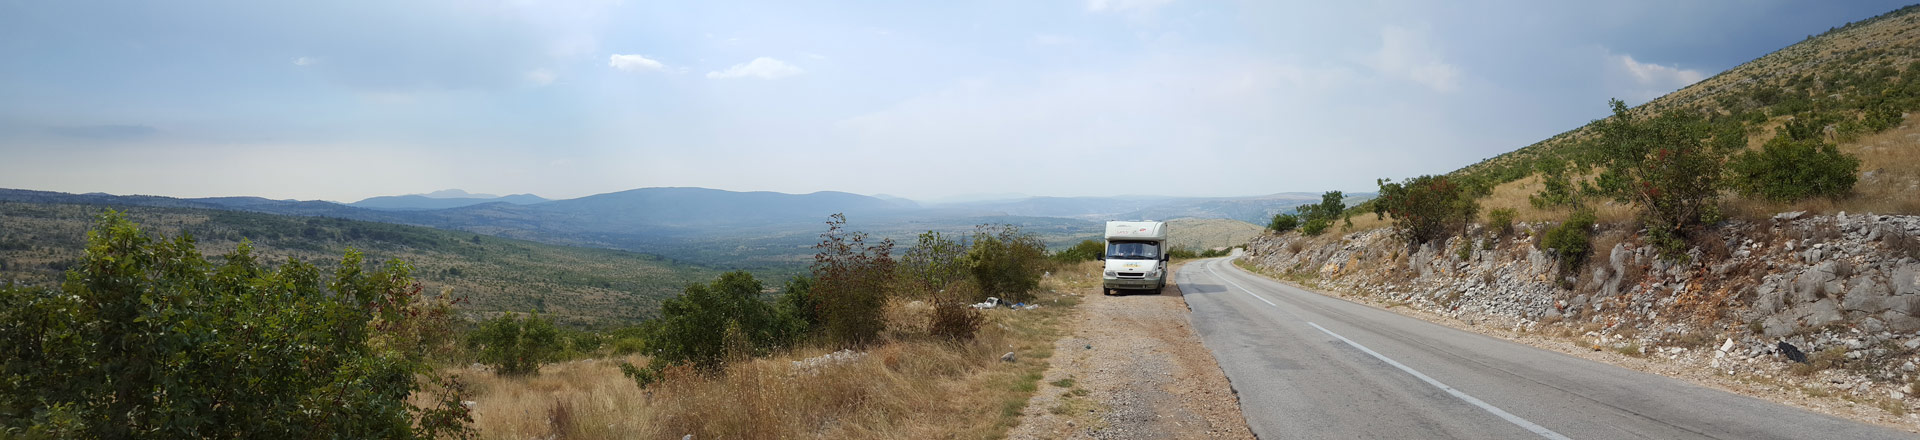 Camper on the road, Bosnia